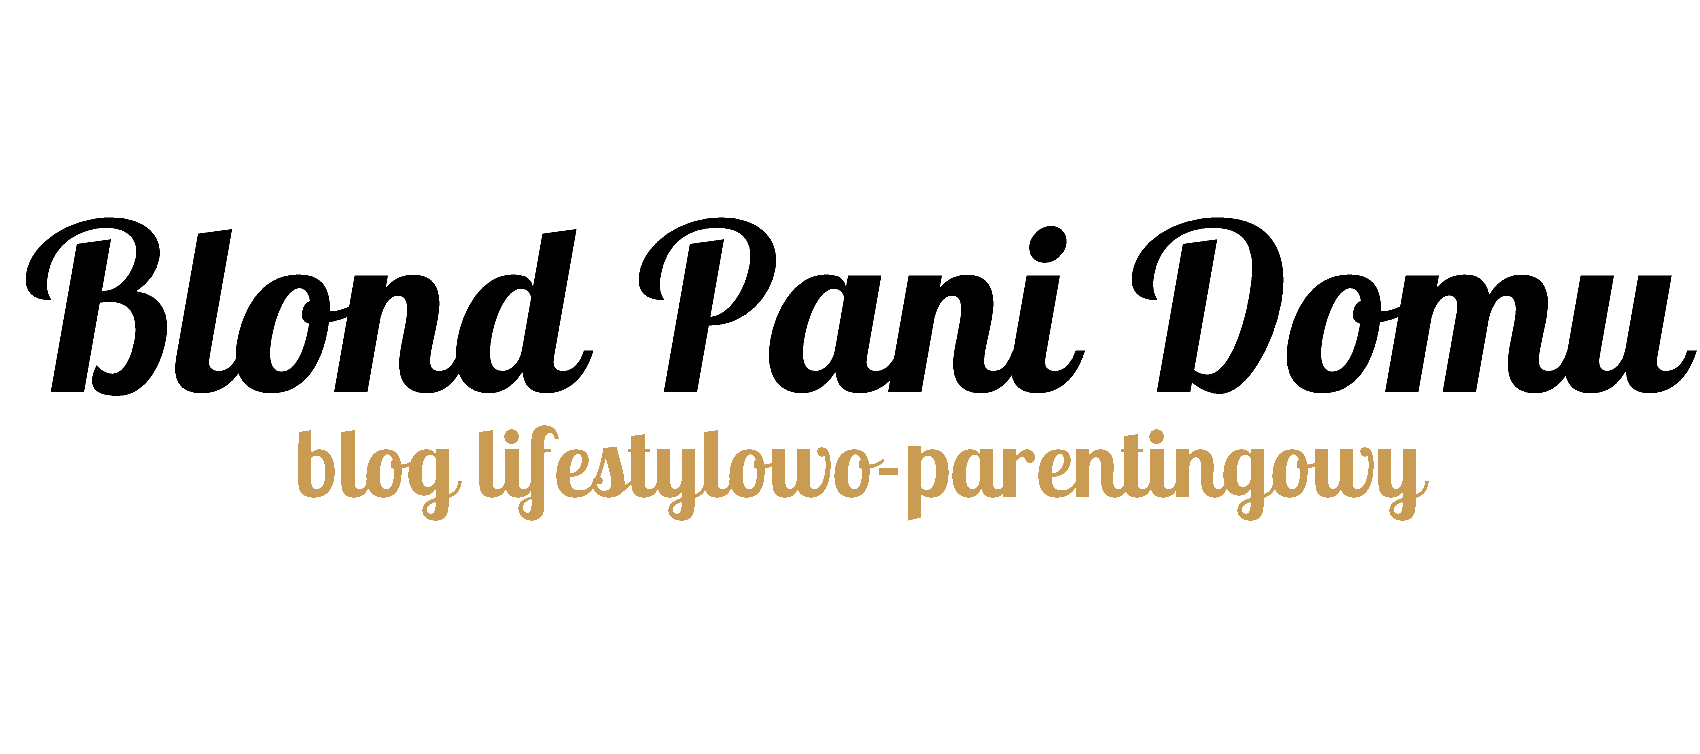 Blog lifestylowo-parentingowy